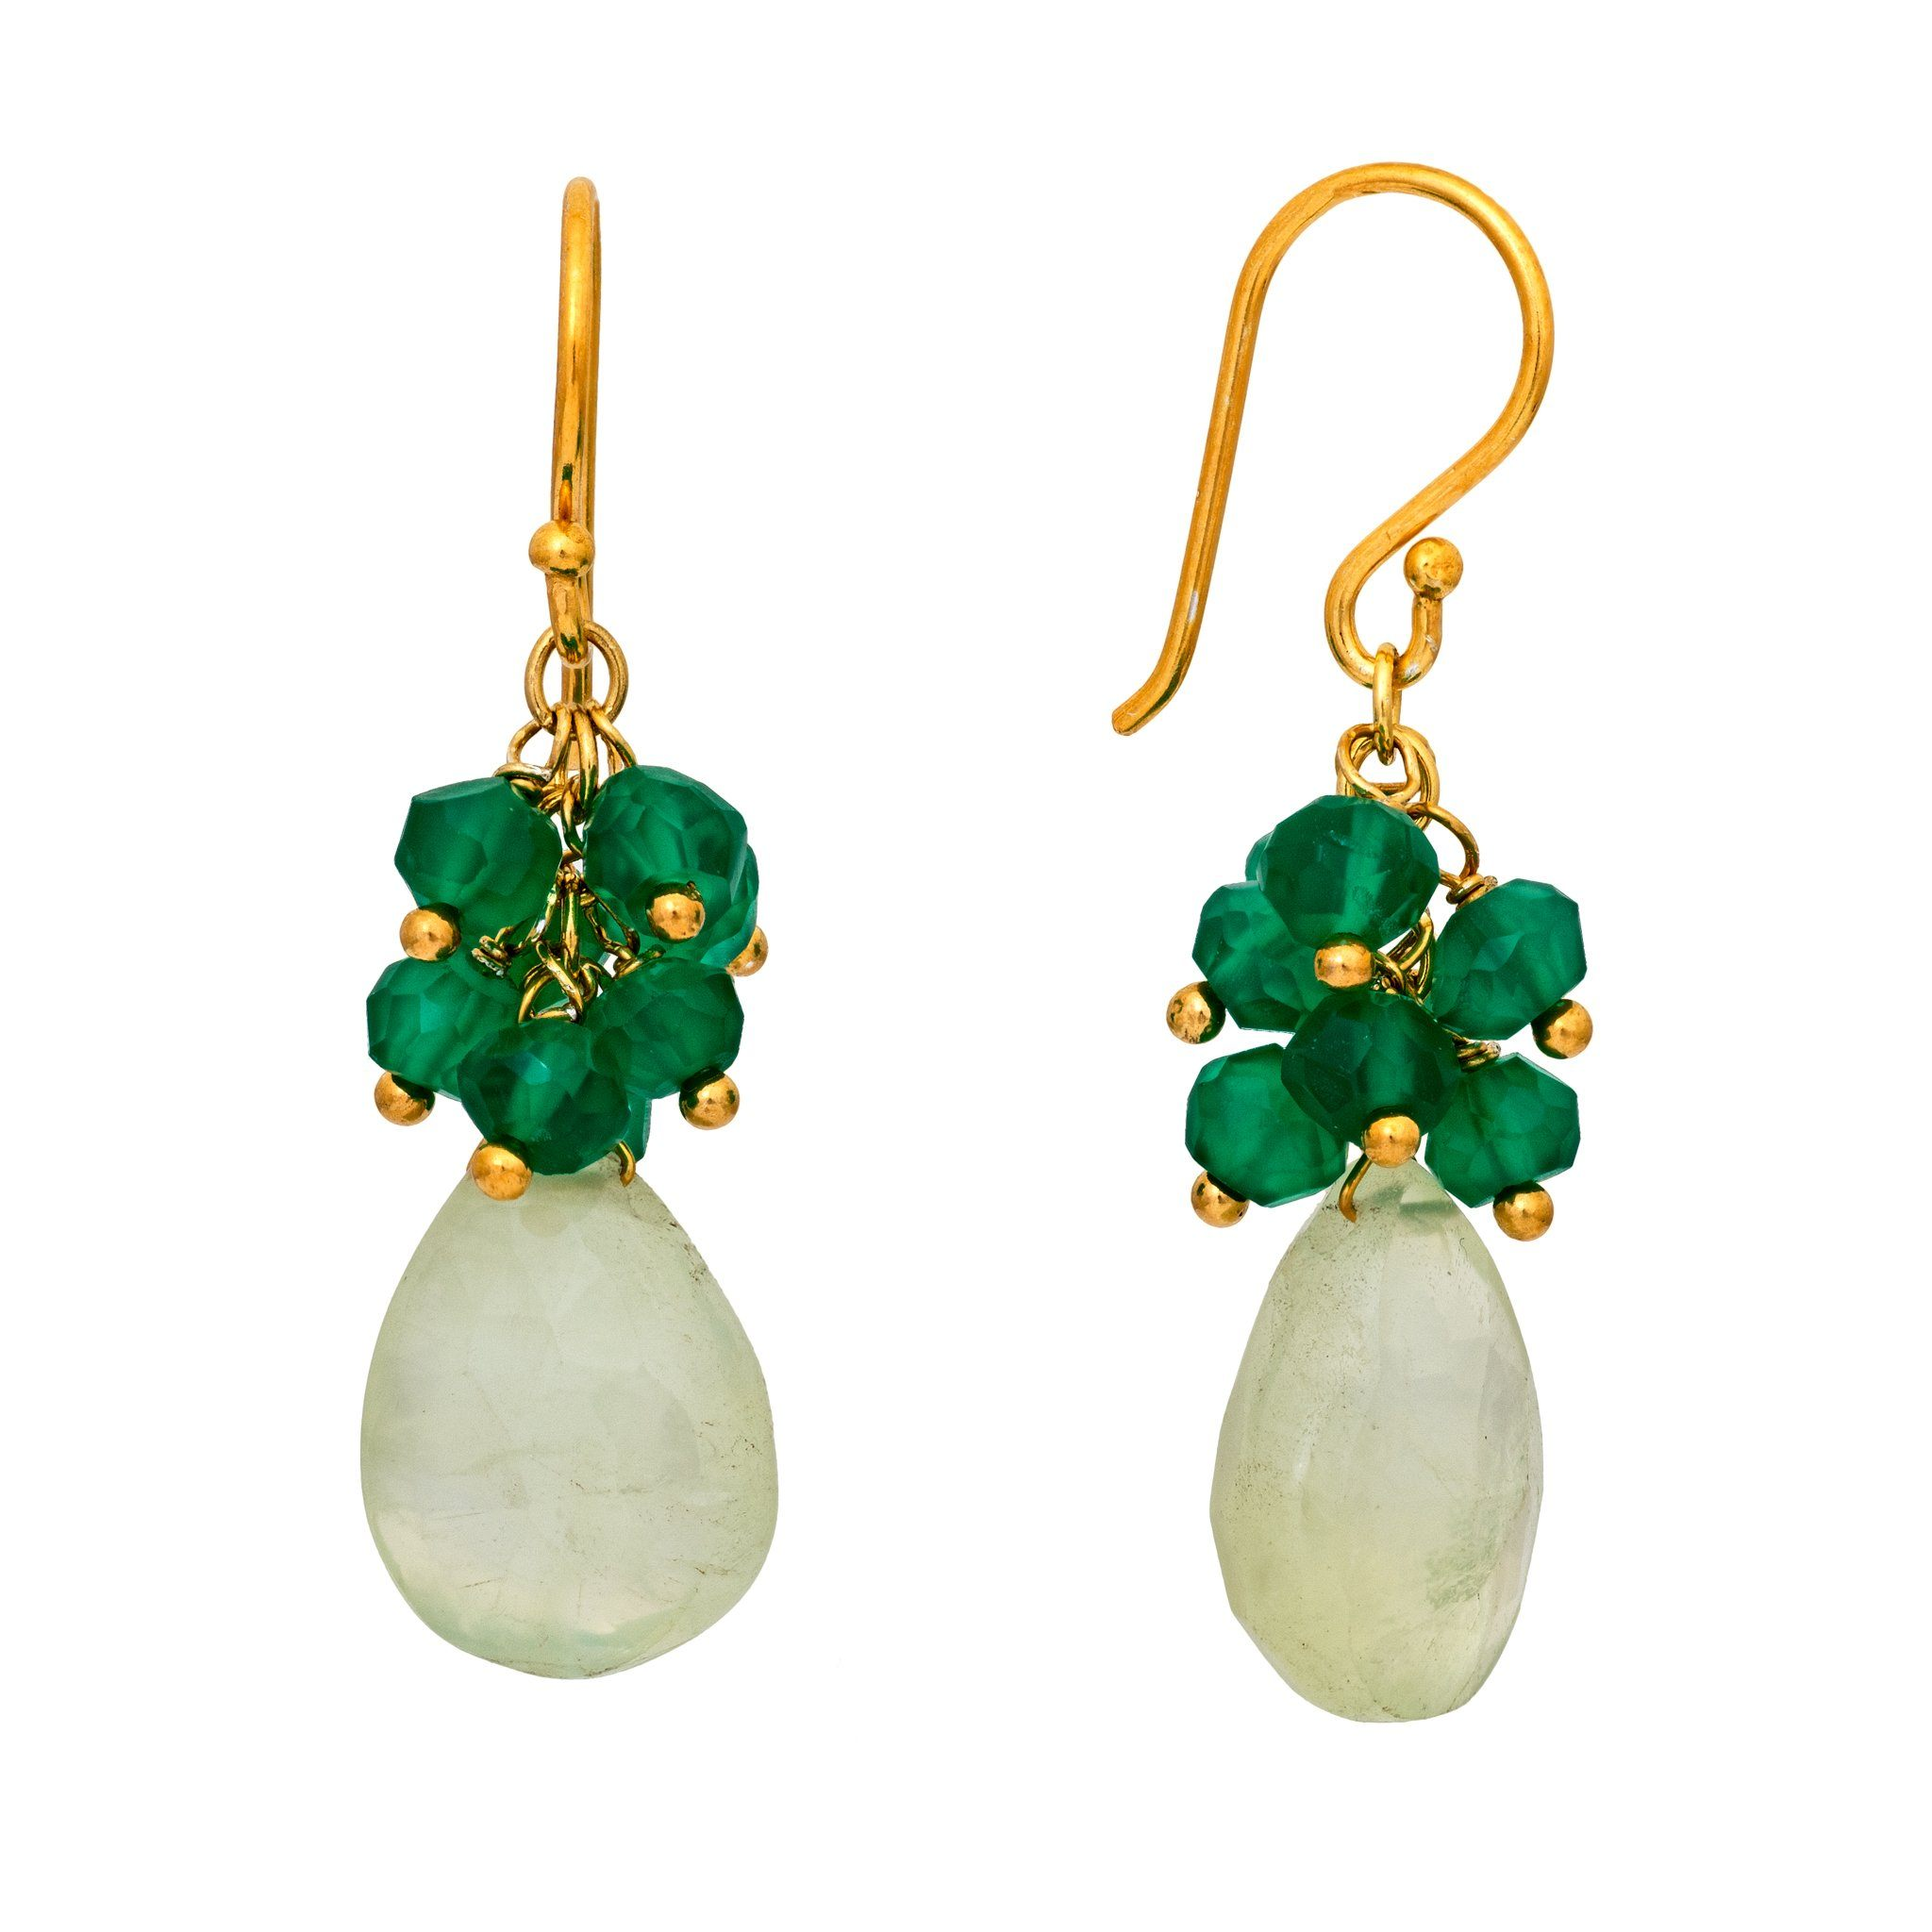 GRAPA green onyx cluster earrings